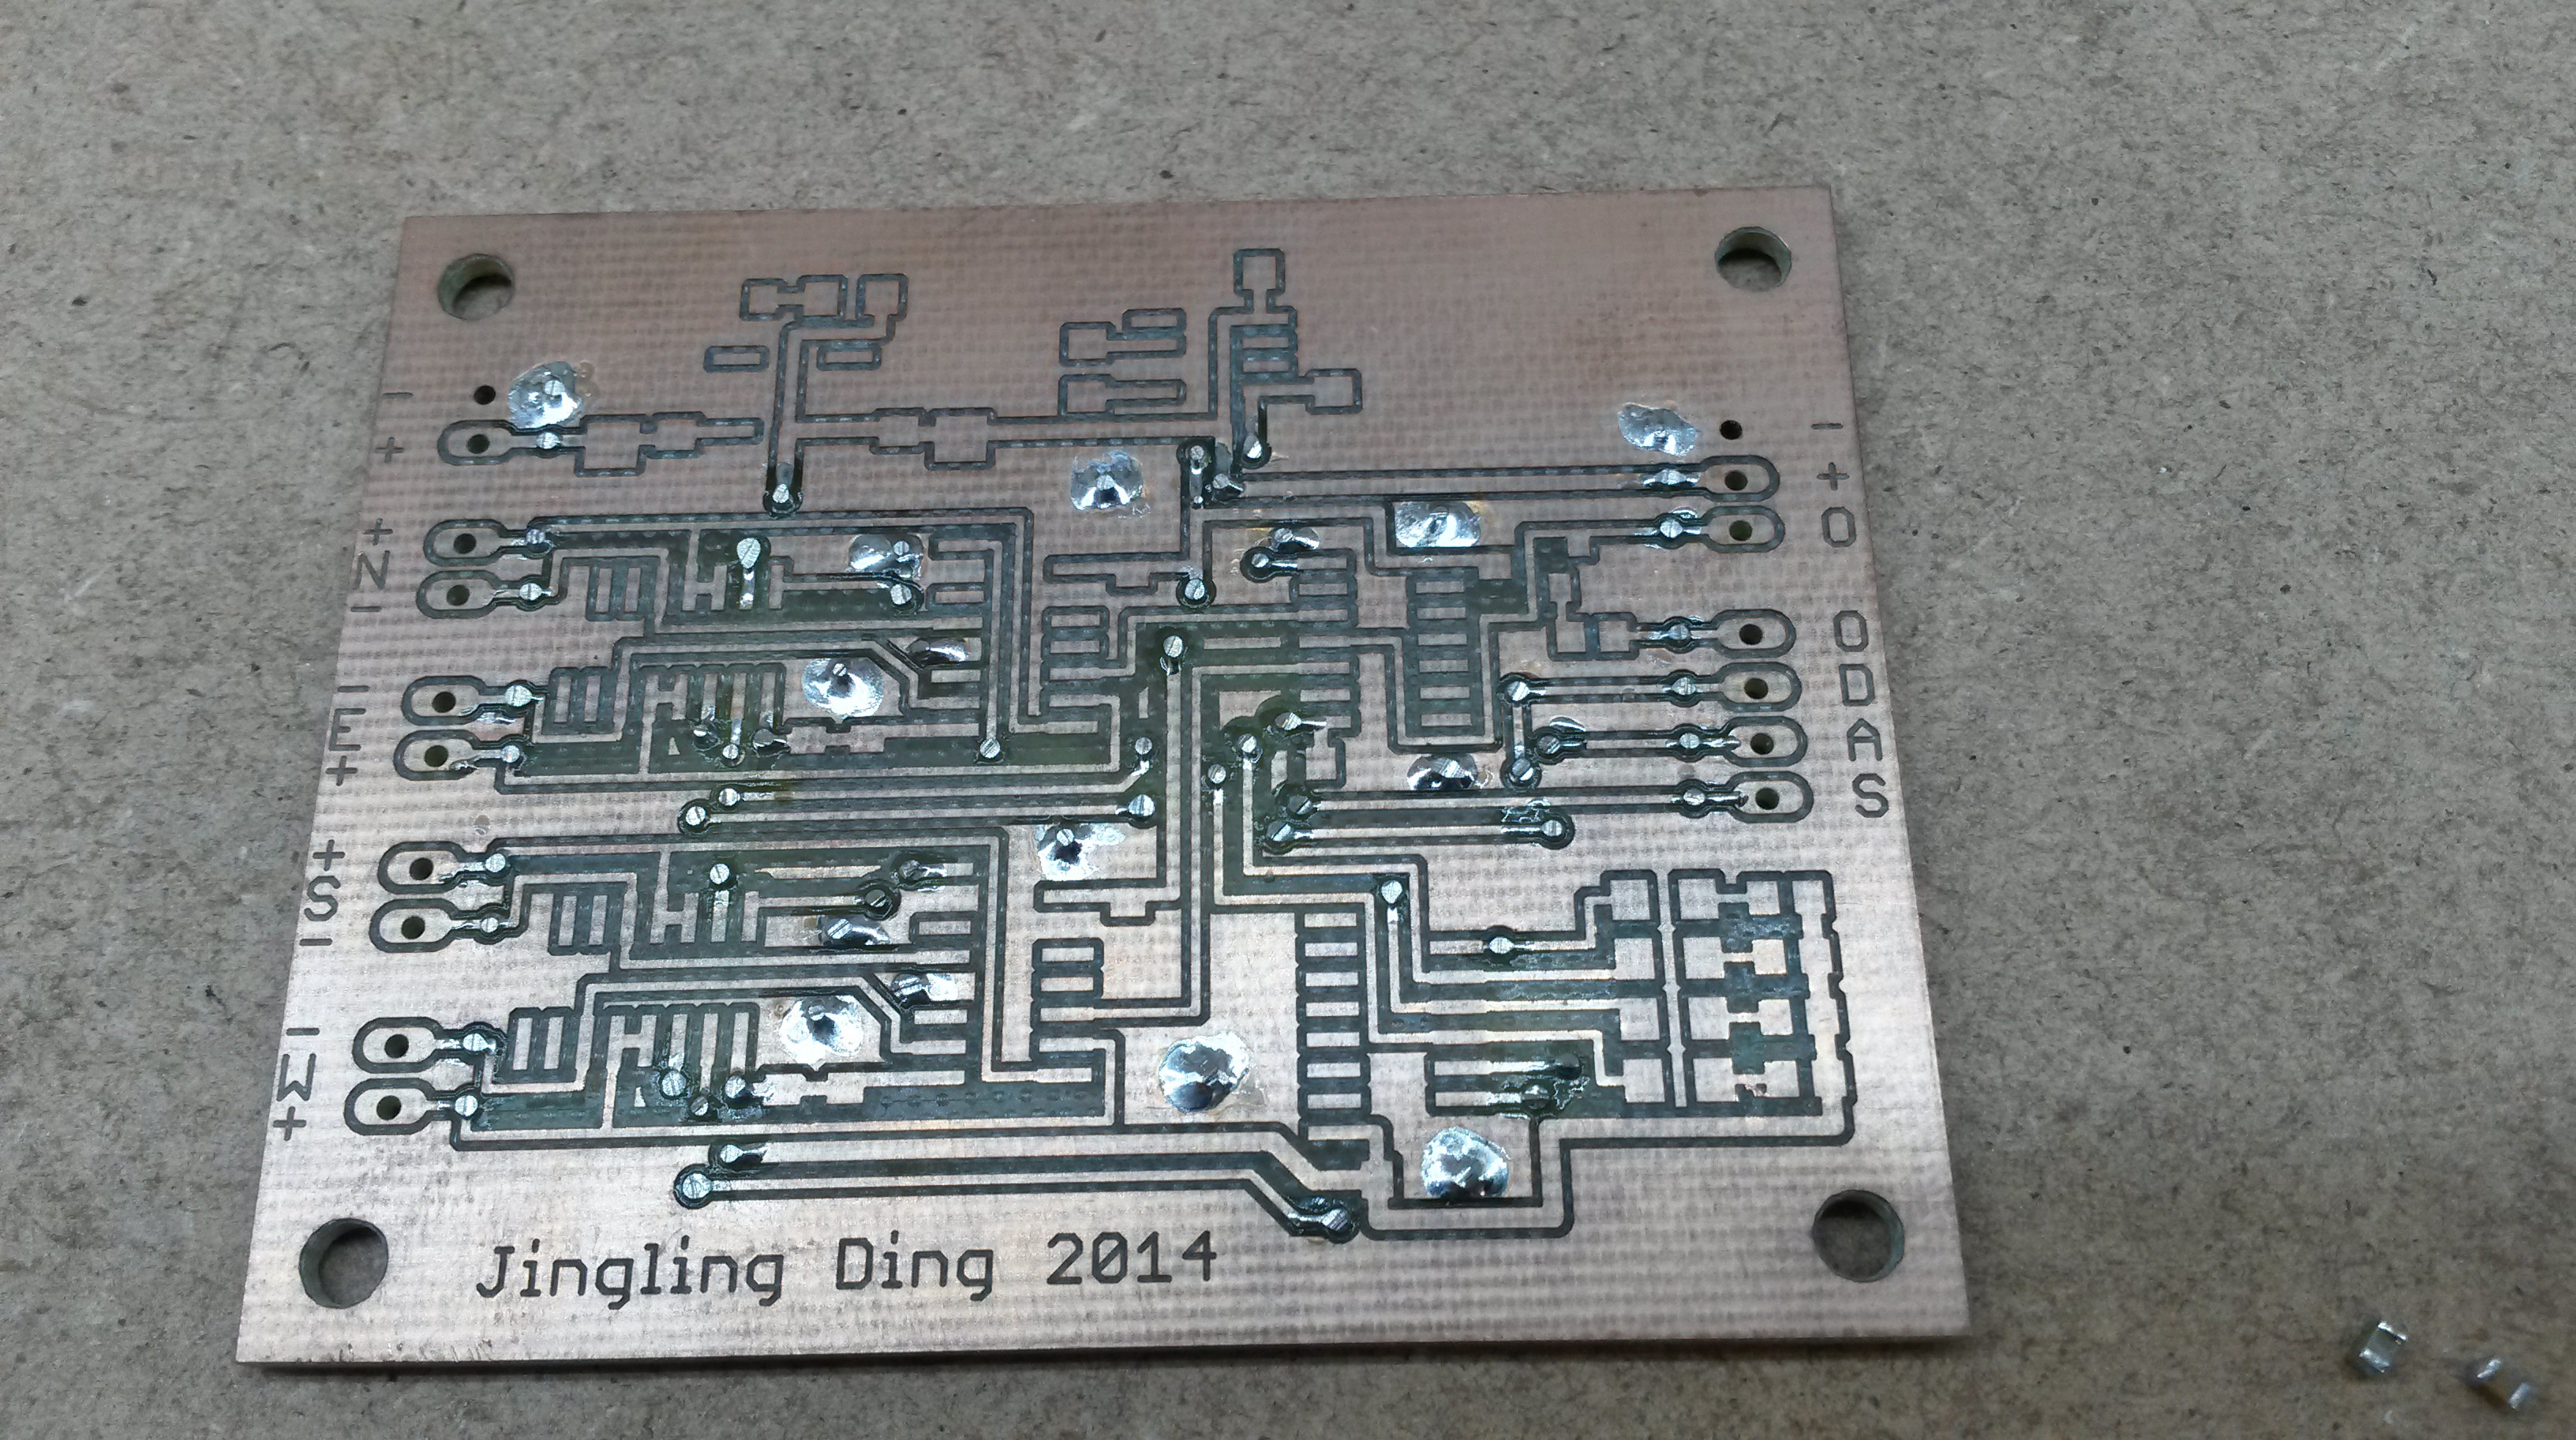 The board for the digital part waiting for the components to be placed and soldered.